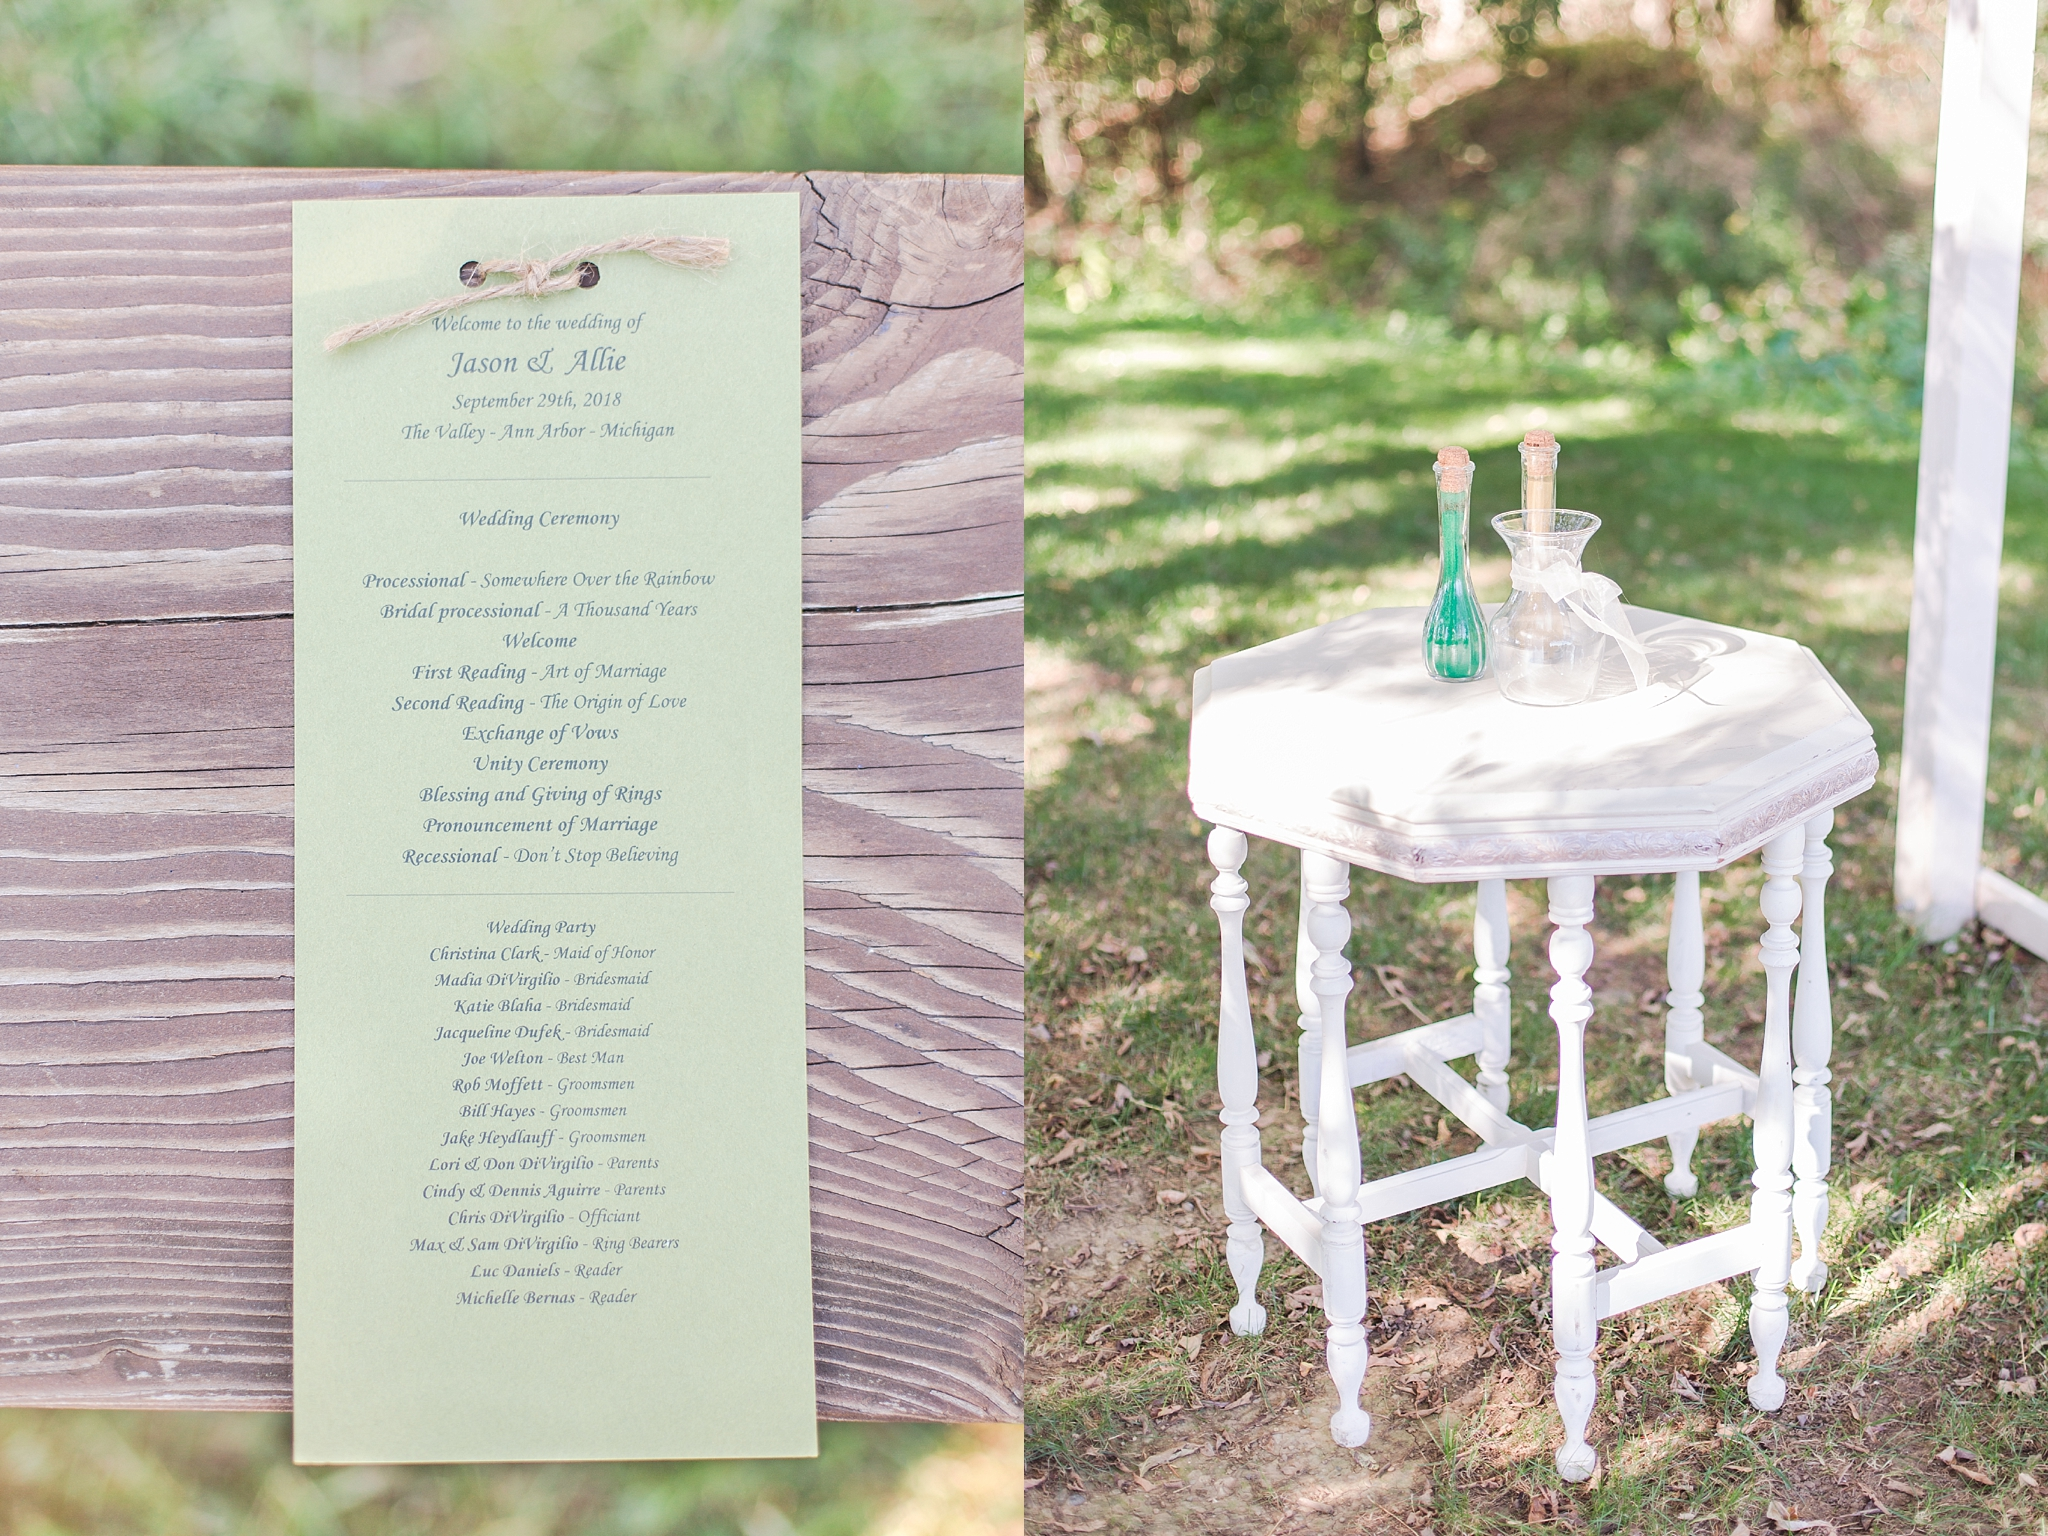 natural-rustic-wedding-photos-at-frutig-farms-the-valley-in-ann-arbor-michigan-by-courtney-carolyn-photography_0051.jpg